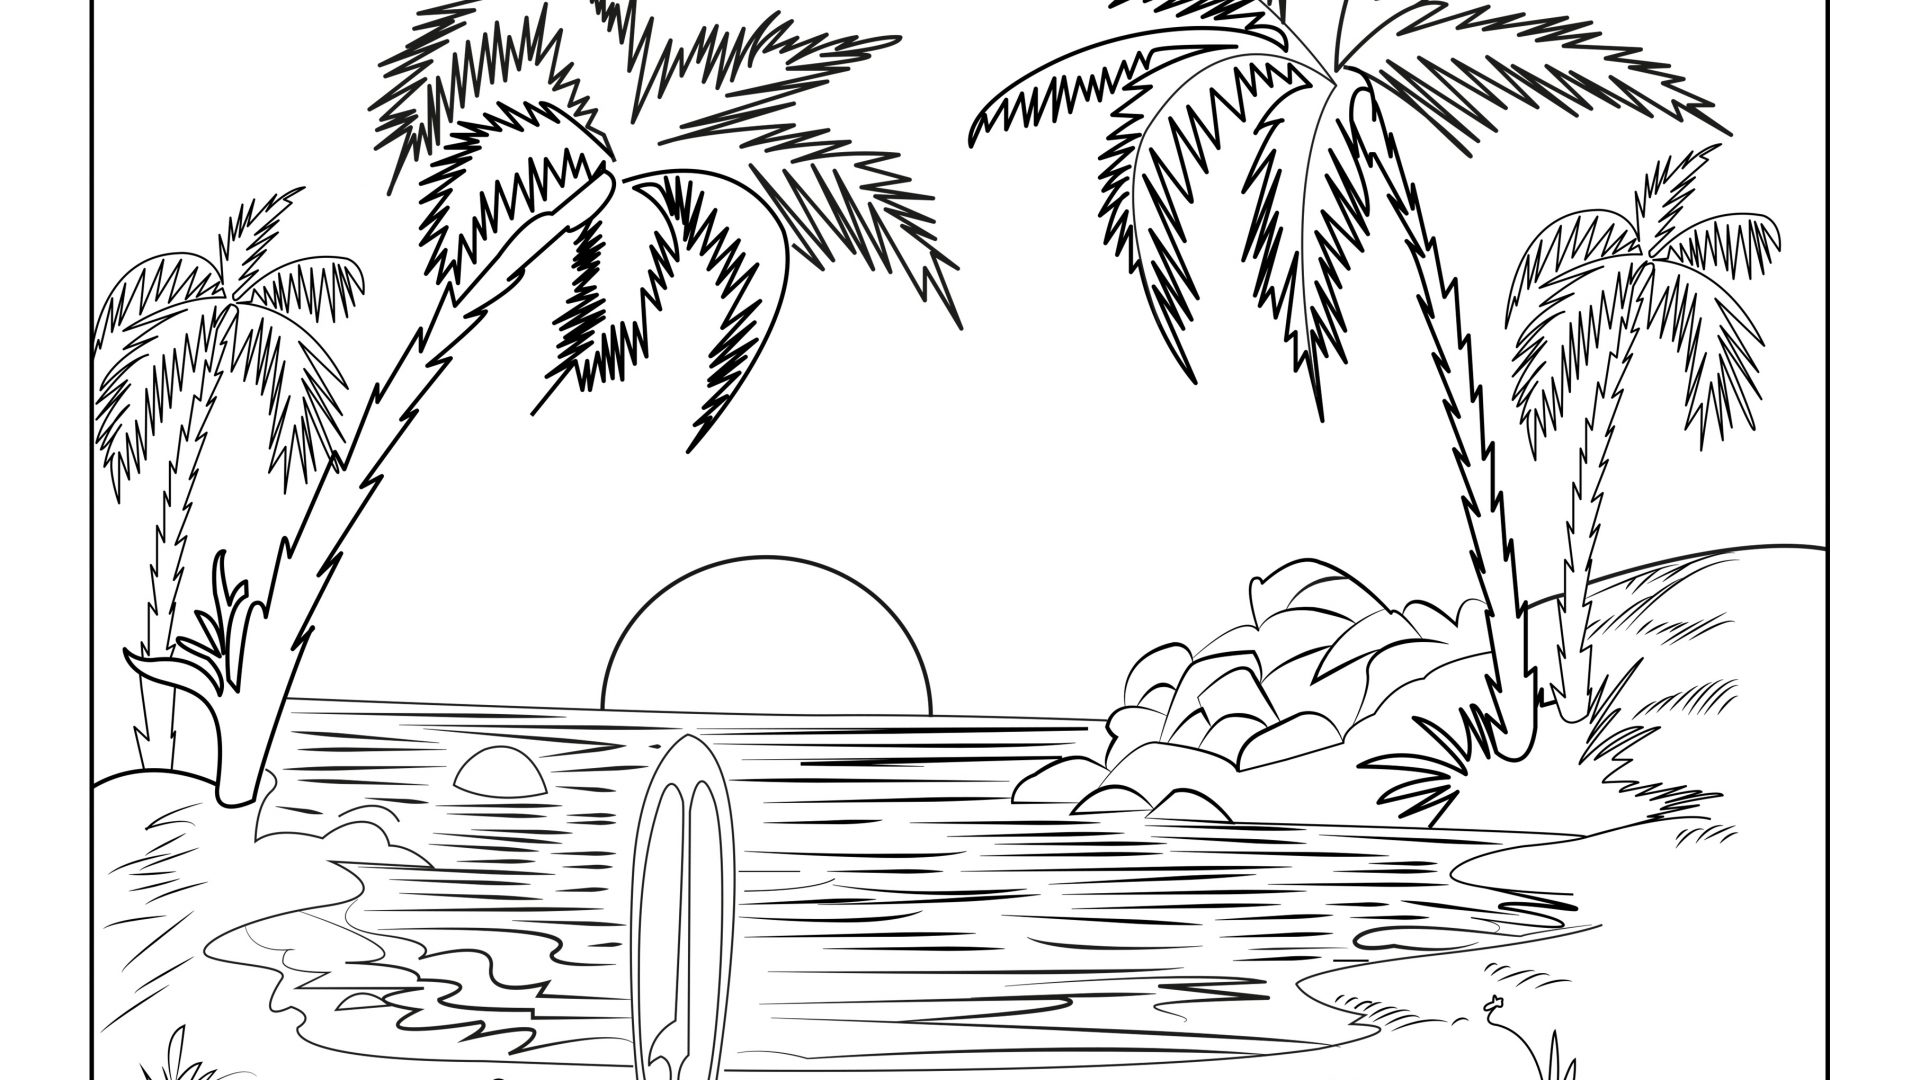 coloring pictures nature nature coloring pages educational fun kids coloring nature pictures coloring